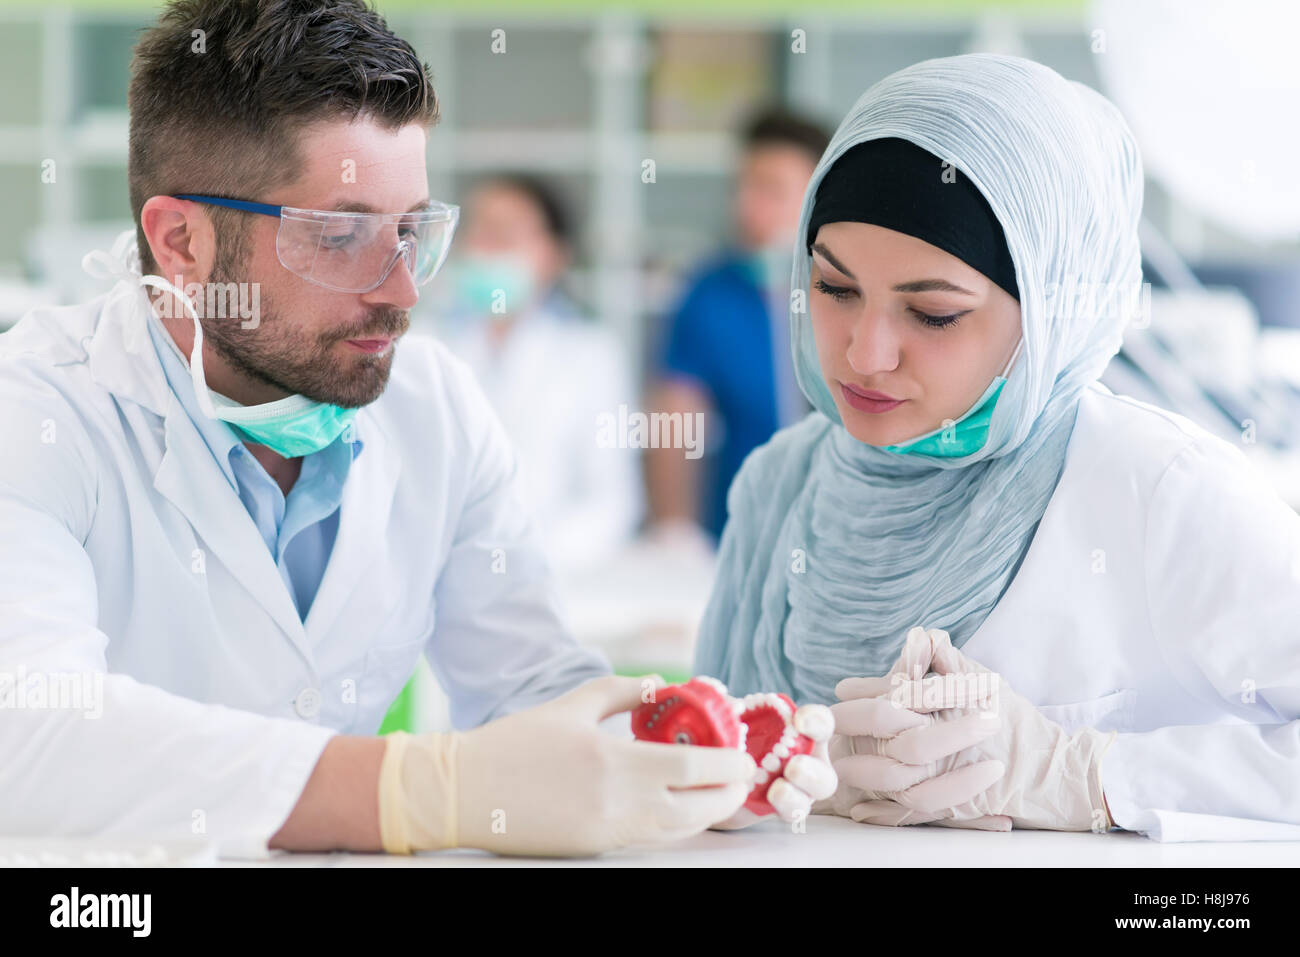 Arab students with hijab while working on the denture, false teeth. - Stock Image